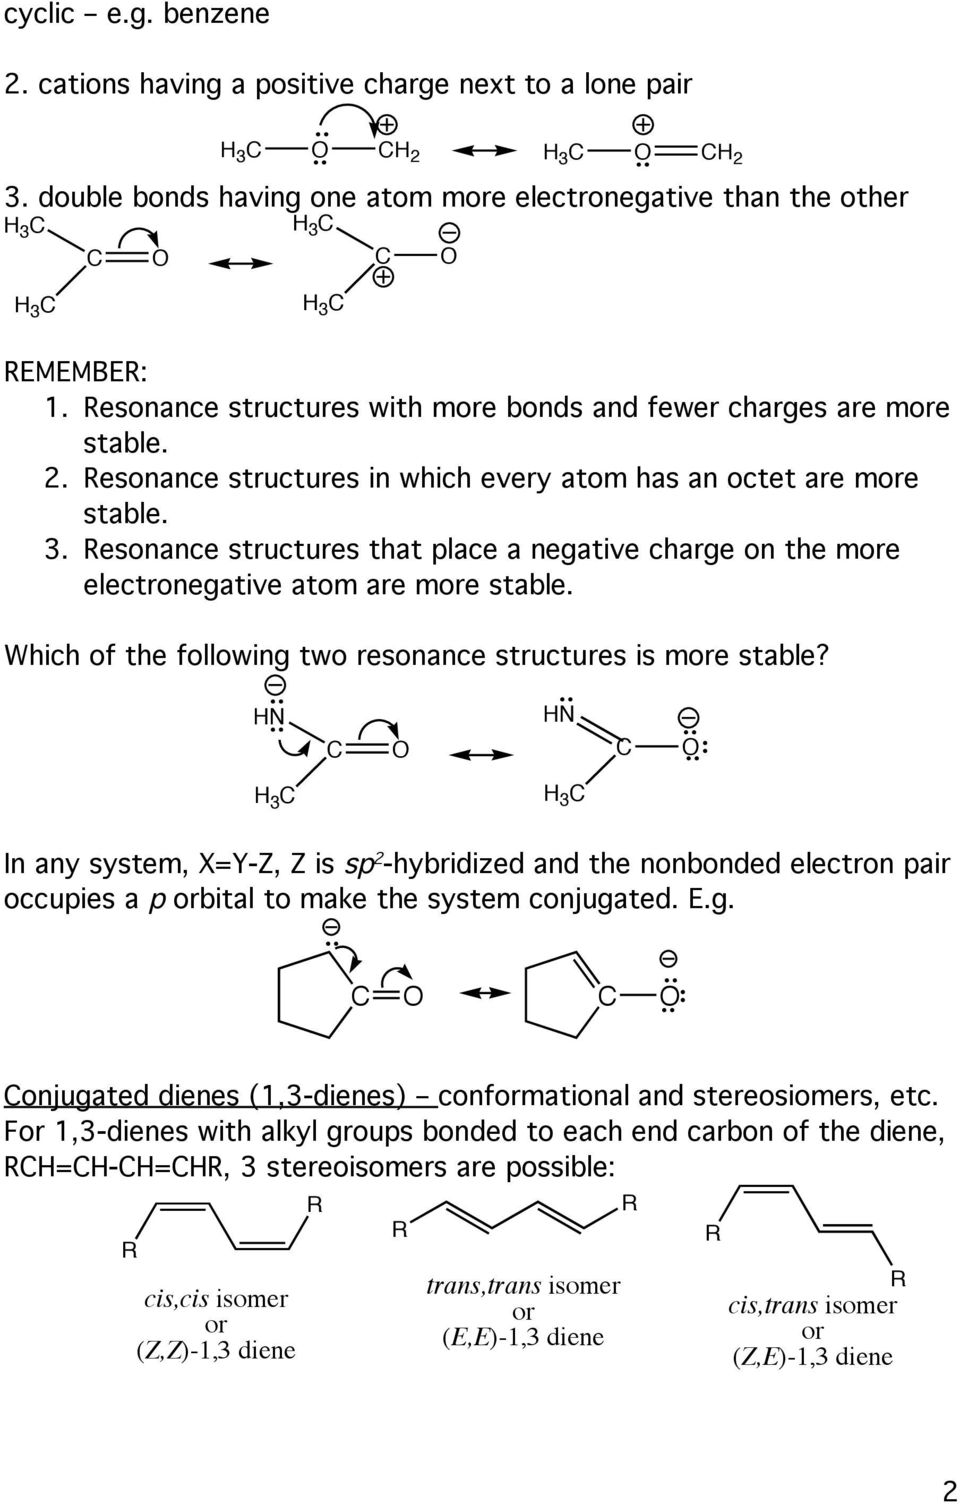 esonance structures that place a negative charge on the more electronegative atom are more stable. Which of the following two resonance structures is more stable?